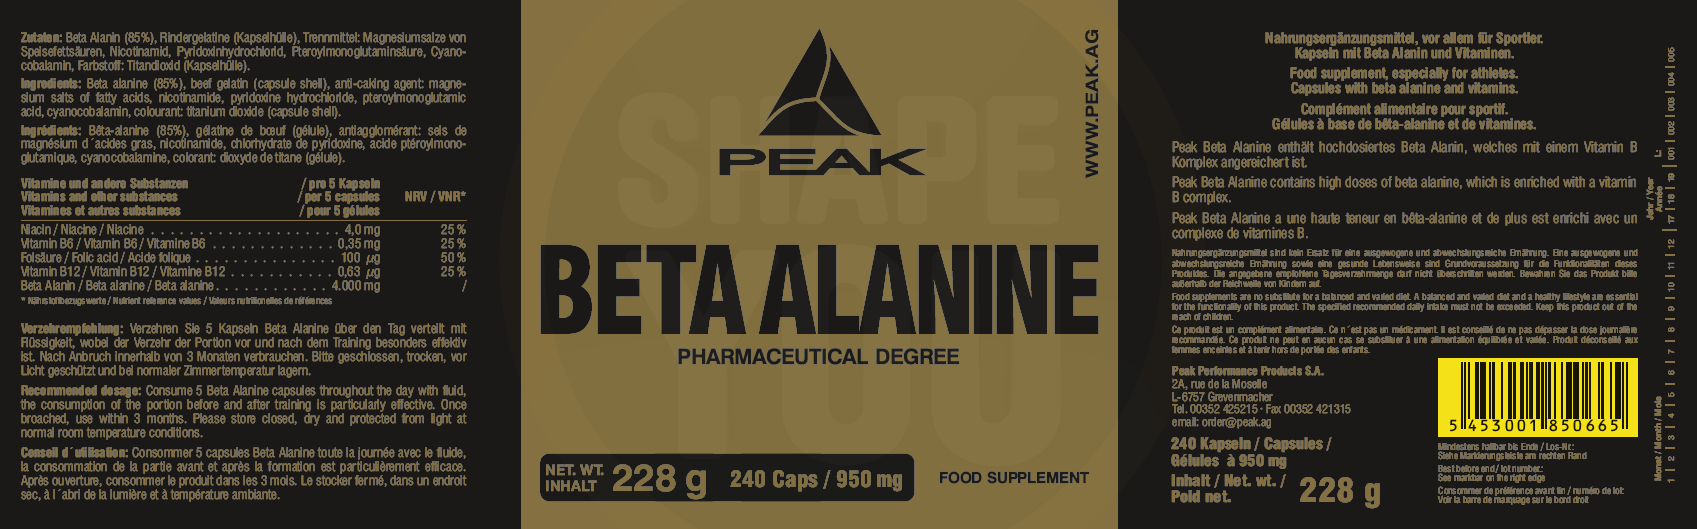 Peak Beta Alanine Etikett